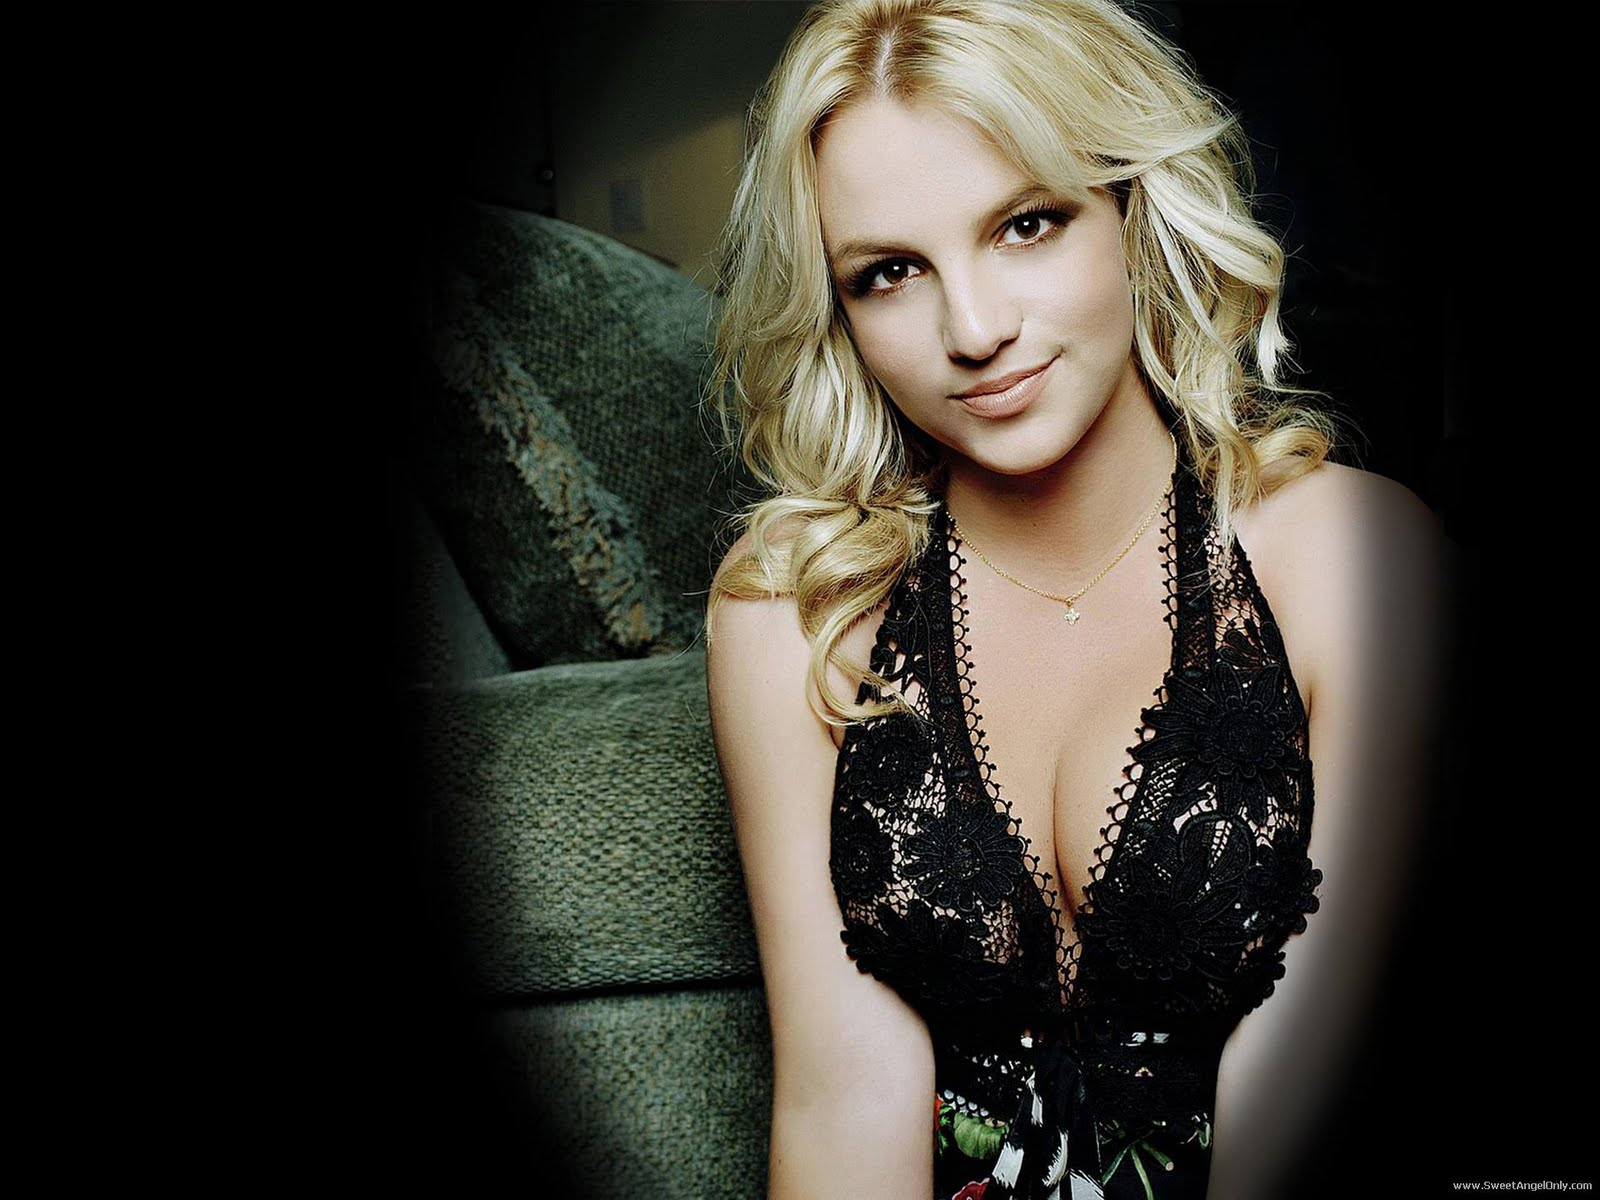 WallPapers Assembly: Britney Spears HD Wallpapers